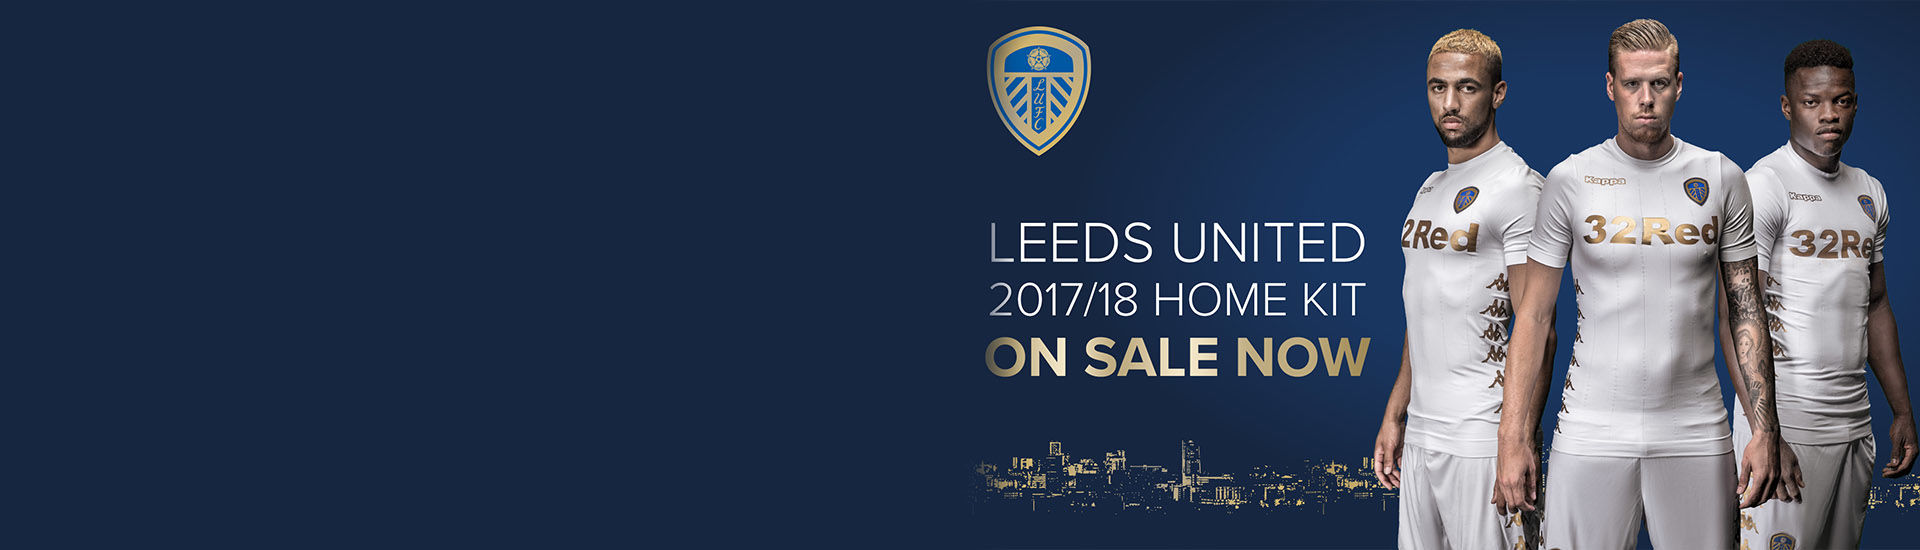 2017/18 HOME KIT REVEALED